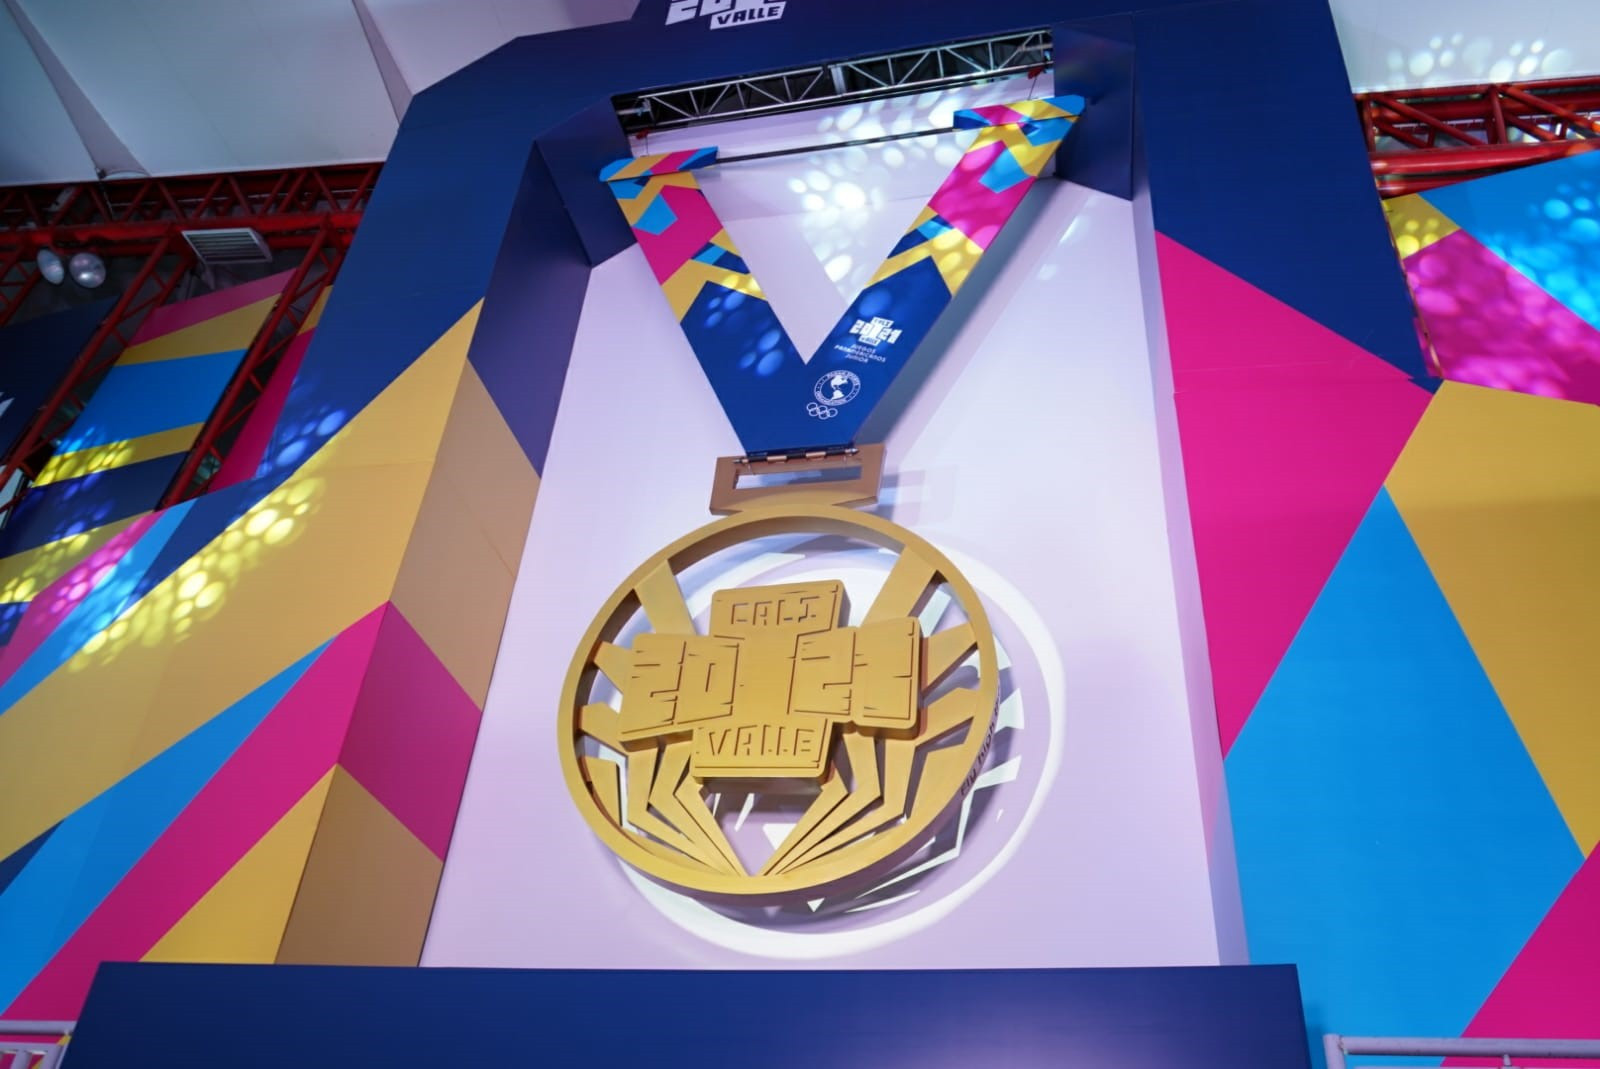 Cali 2021 celebrates 100-day countdown to first Junior Pan American Games